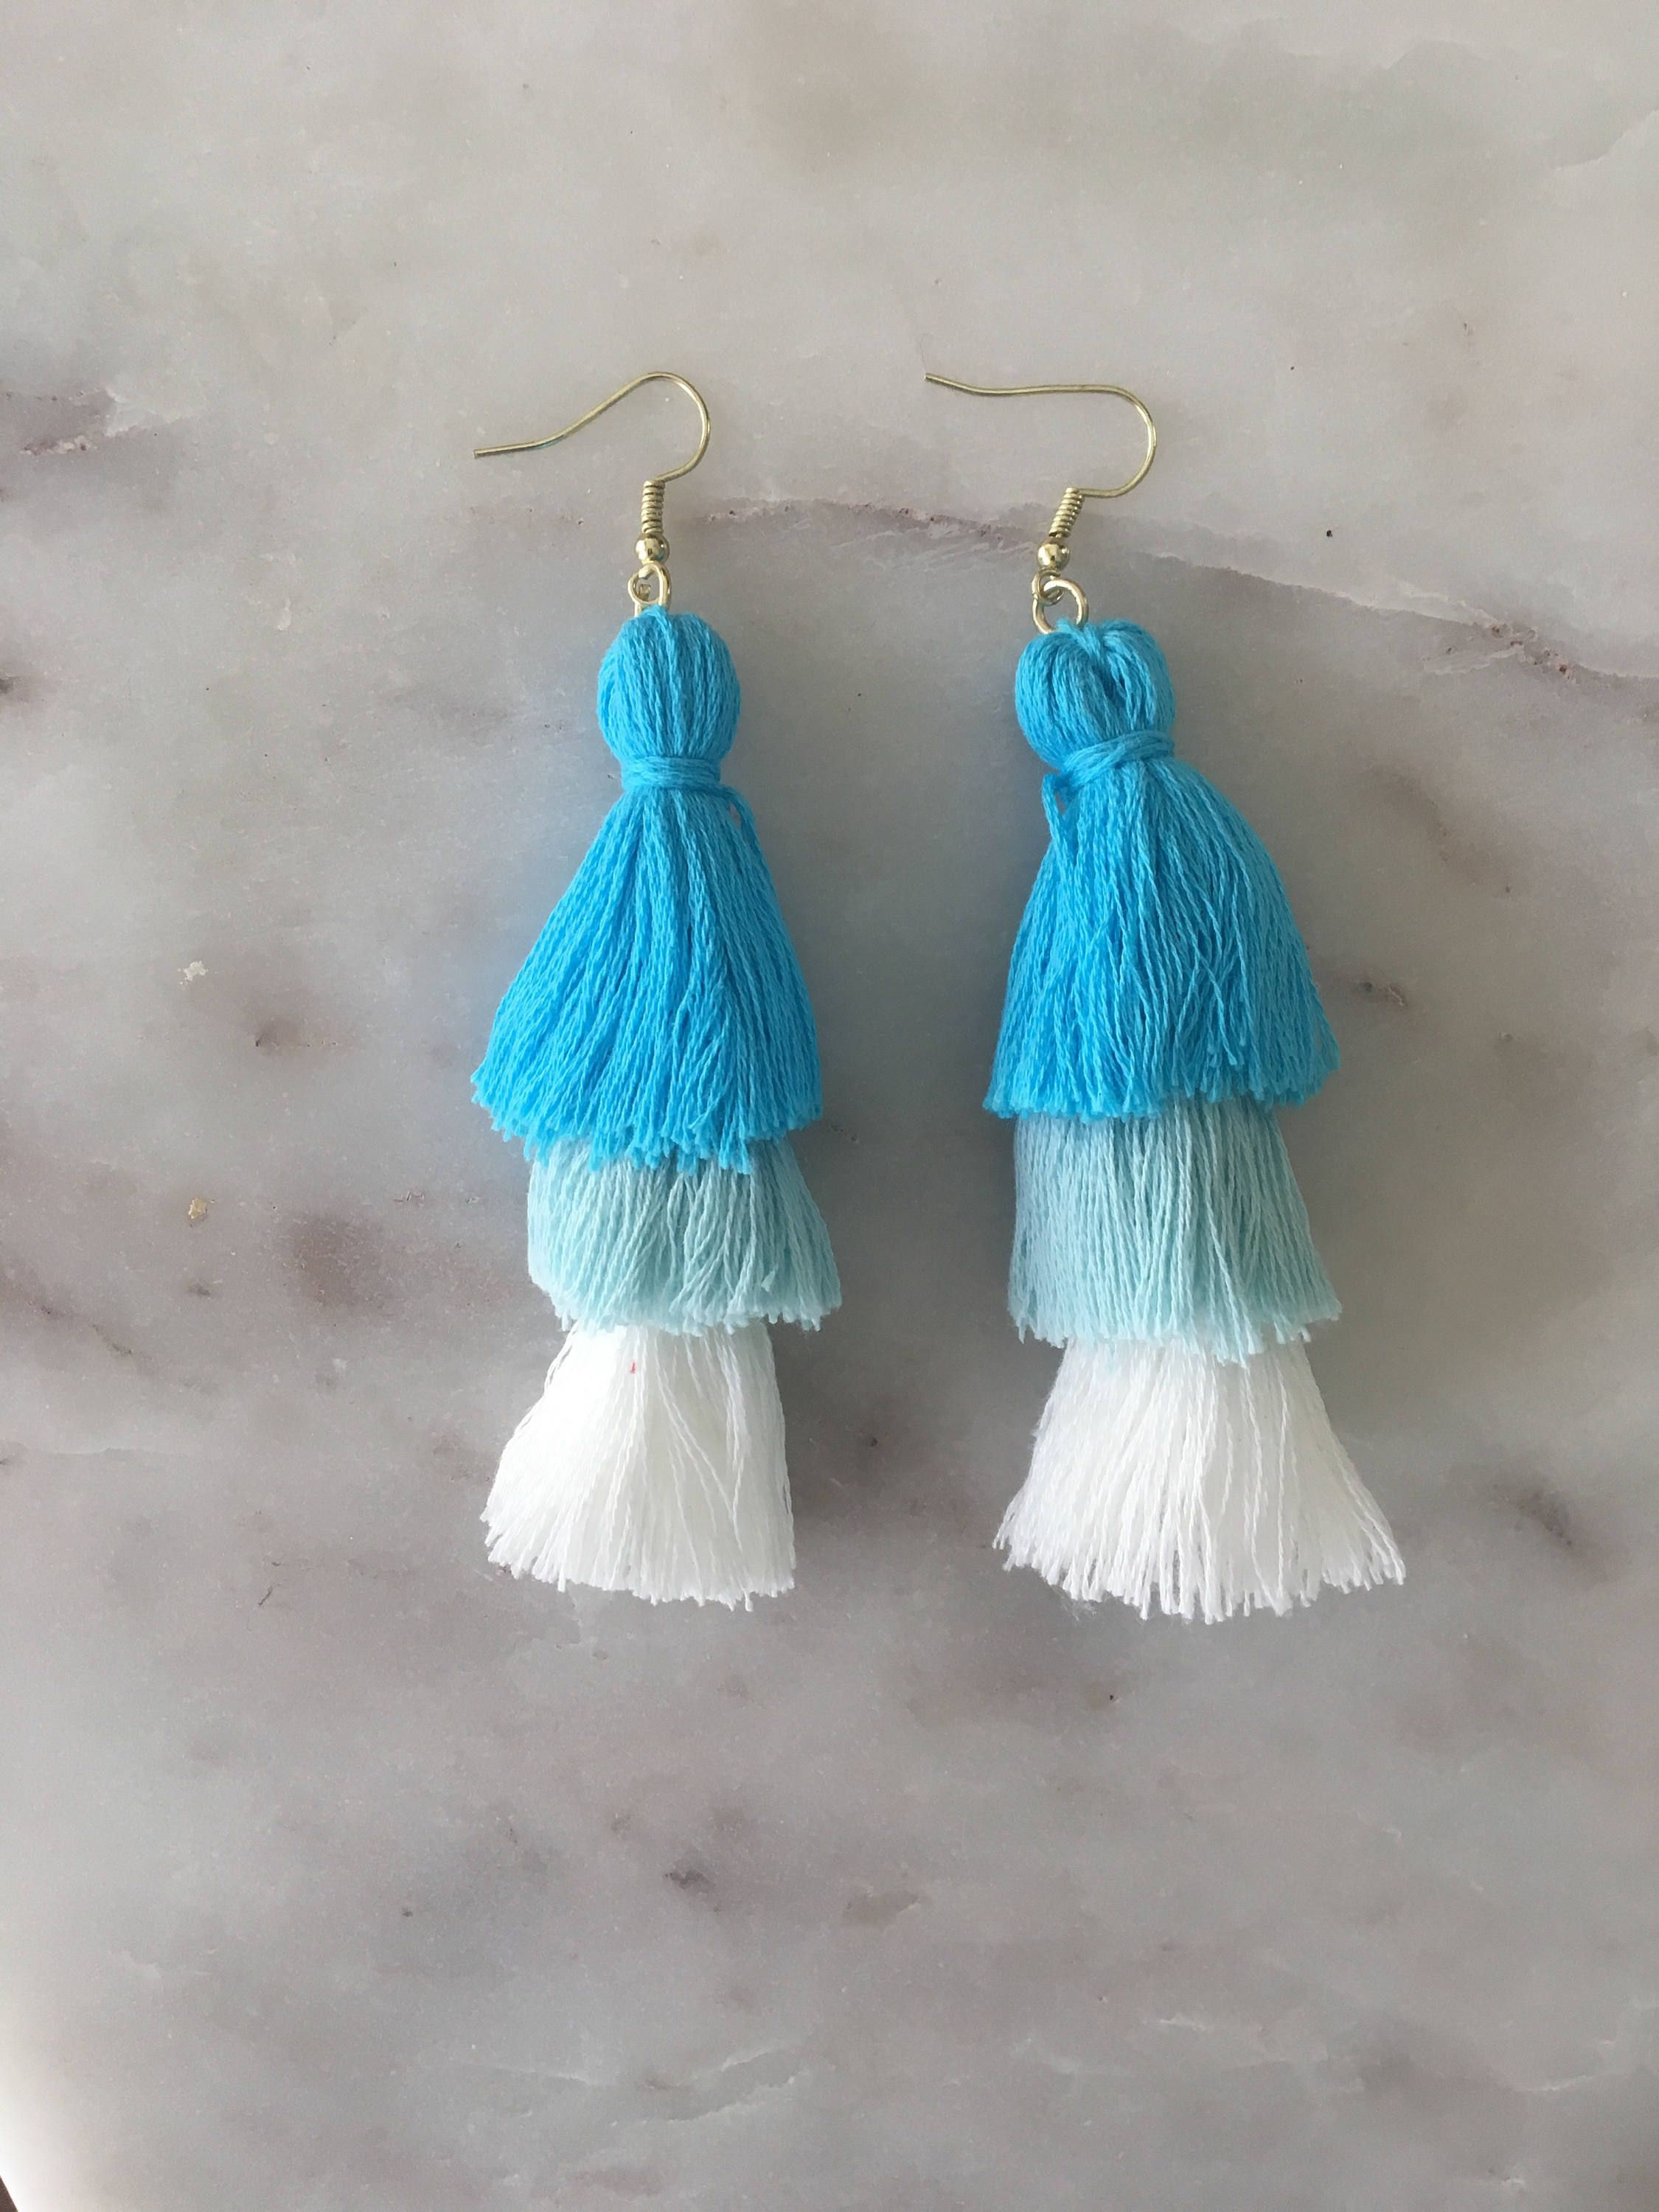 8c2ab69c6601b0 Ombre blue white layered tassel earrings three tier tassel earrings  http://etsy.